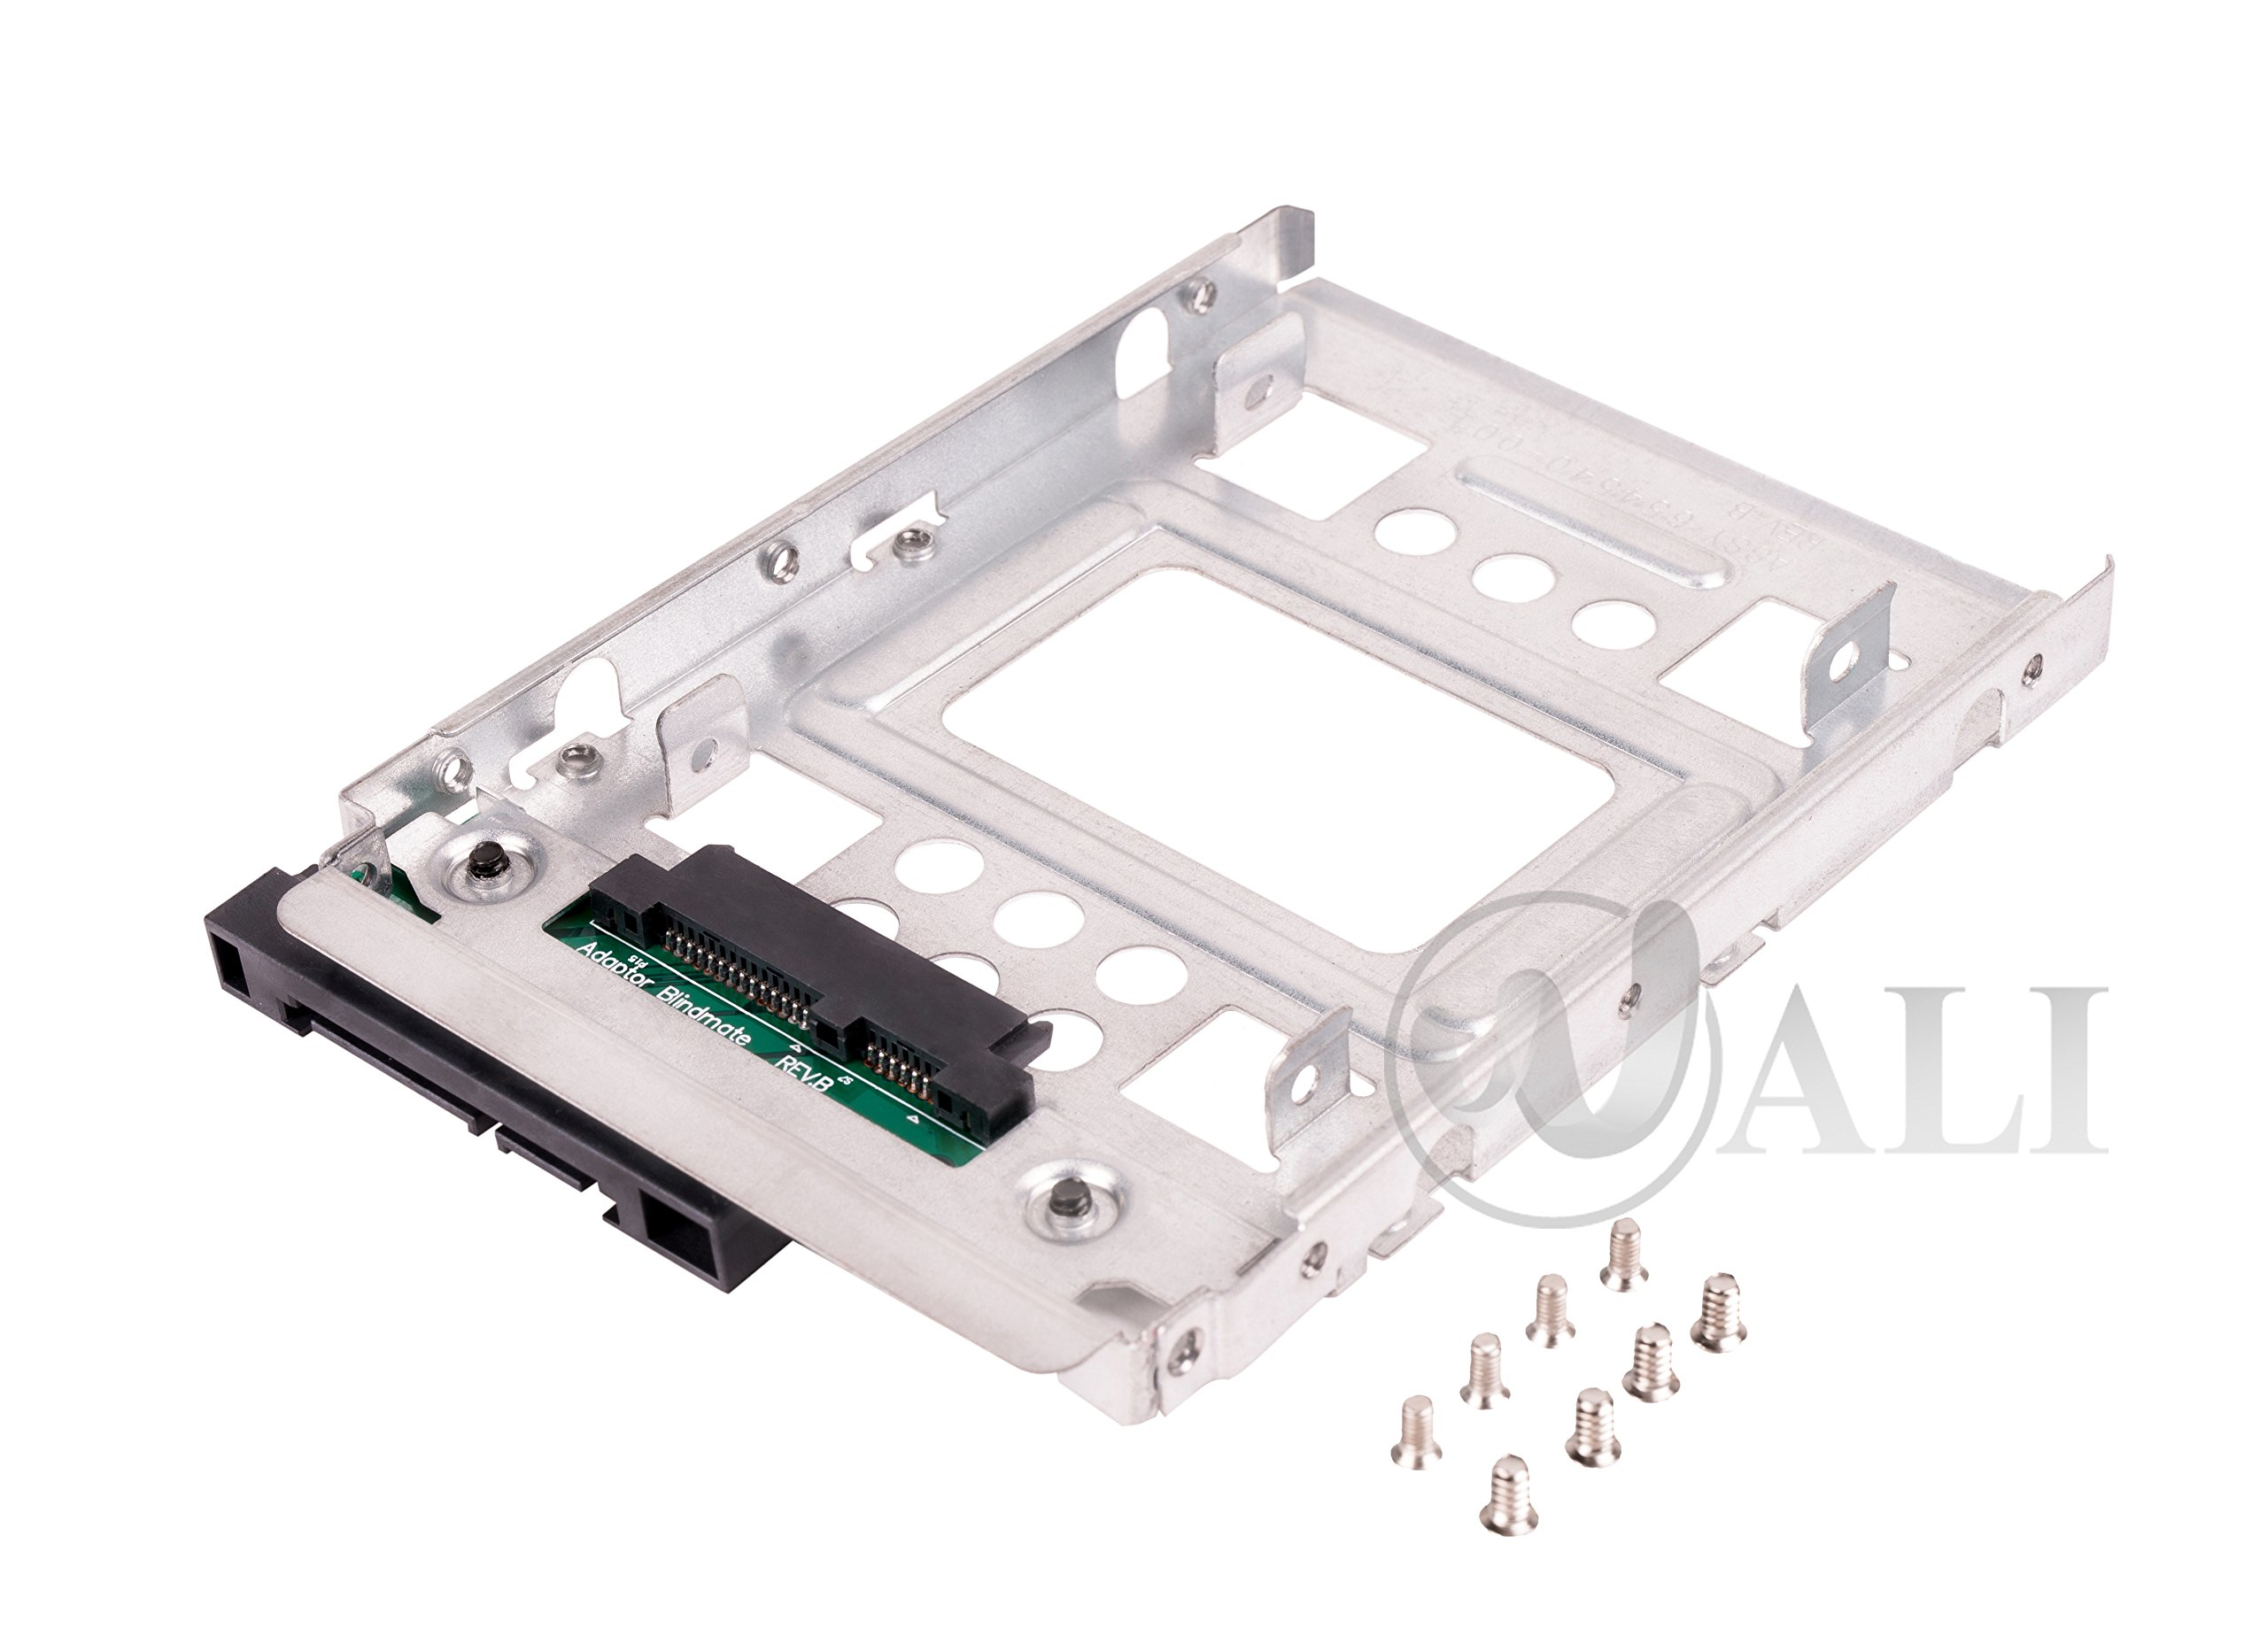 """WALI 2T3 SSD To 3.5"""" Sata Hard Disk Drive HDD Adapter Caddy Tray Cage Hot Swap Plug Converter Bracket Compatible with All The 3.5"""" SAS/SATA Drive Caddie Trays for HP Dell IBM Lenovo"""